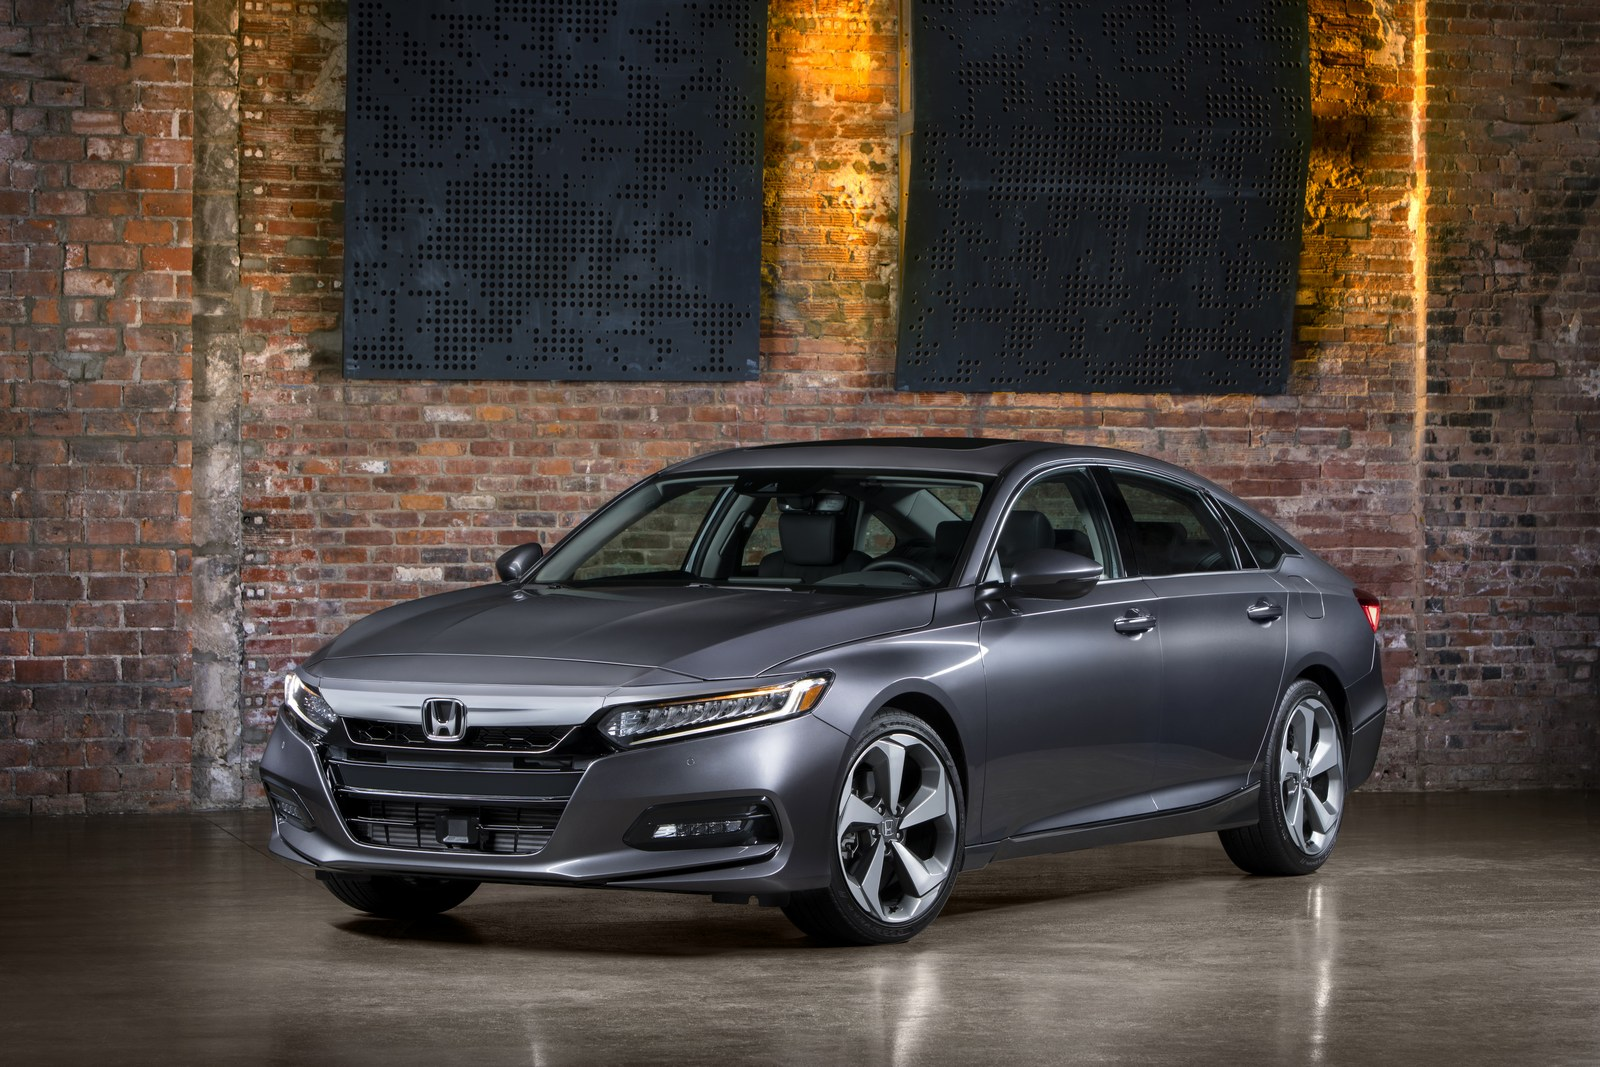 2018 honda accord hybrid fuel economy epa rated at 47 mpg